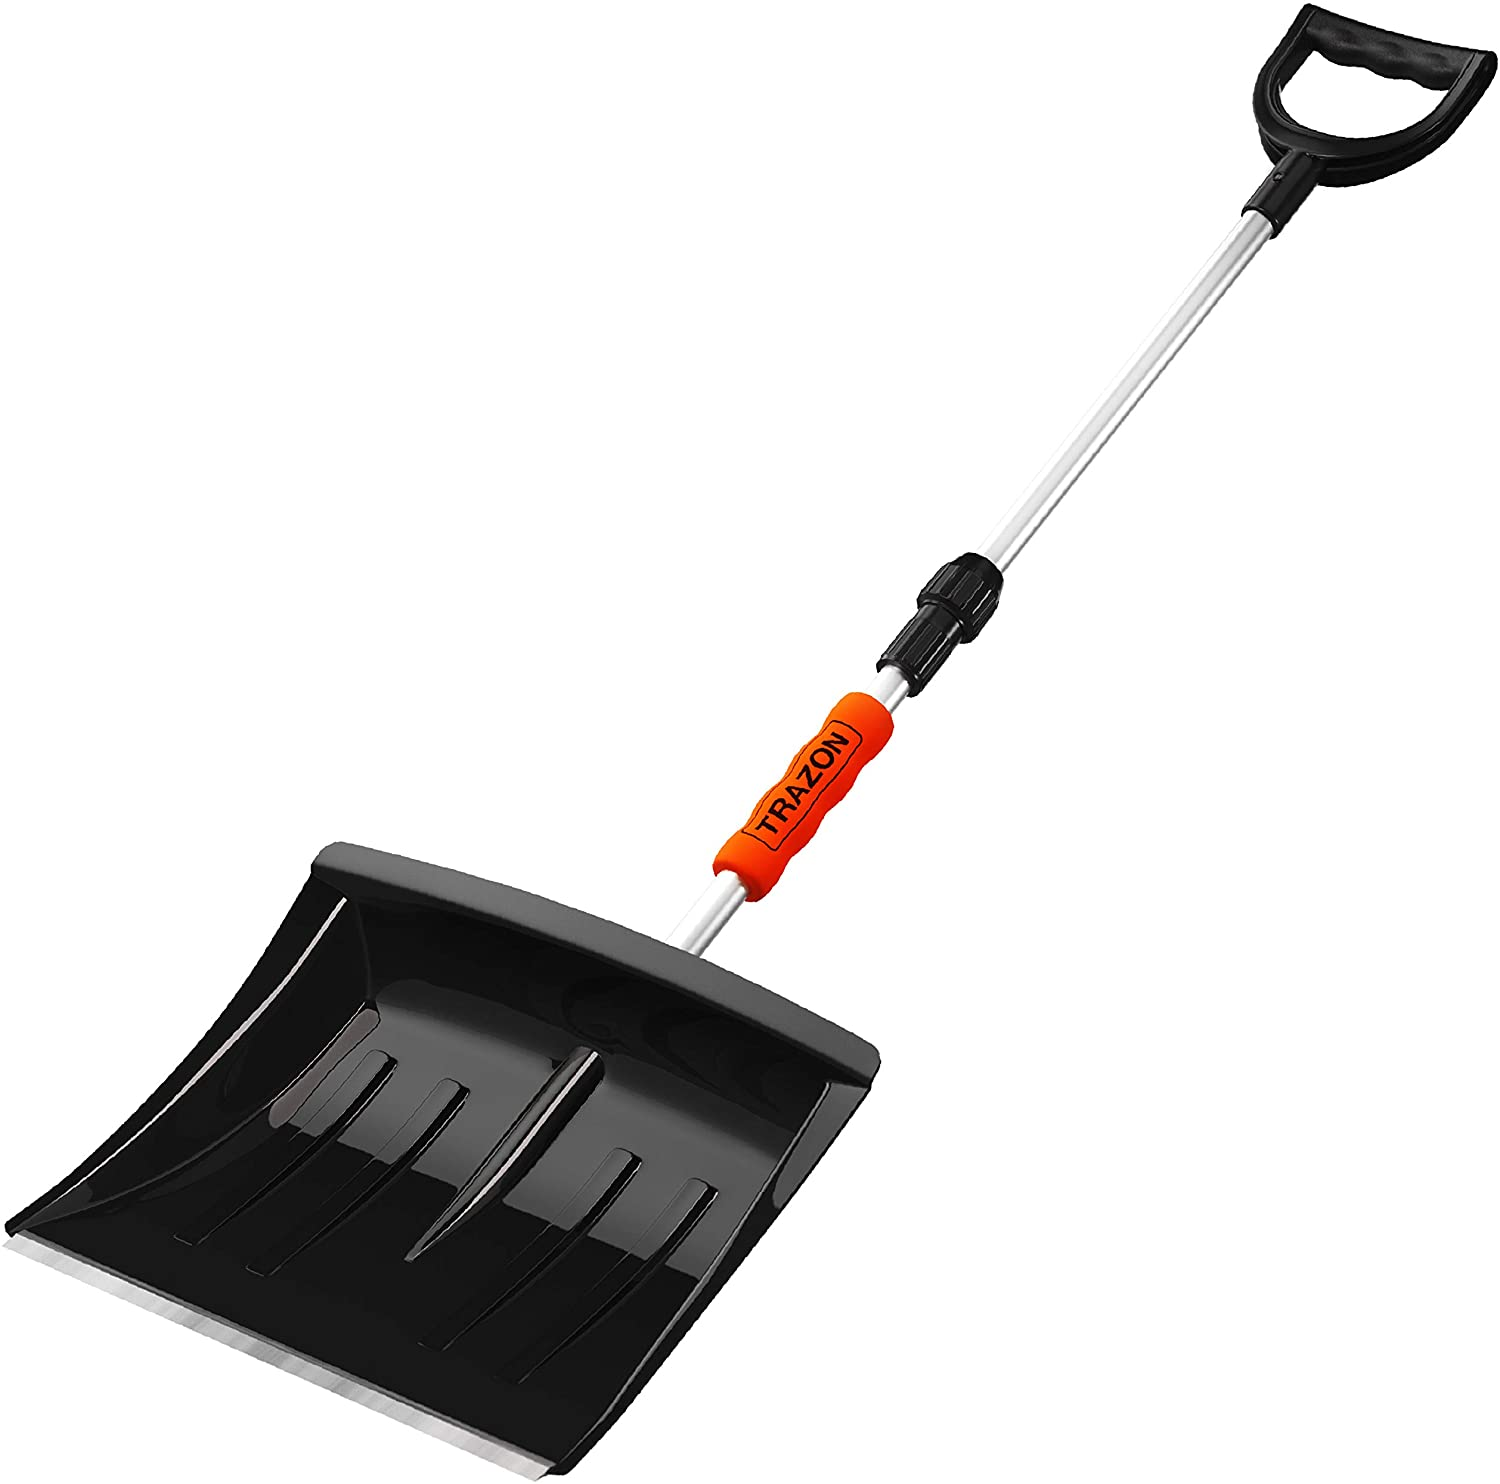 Best Snow Shovel for Seniors Reviews and Buying Guide 2021